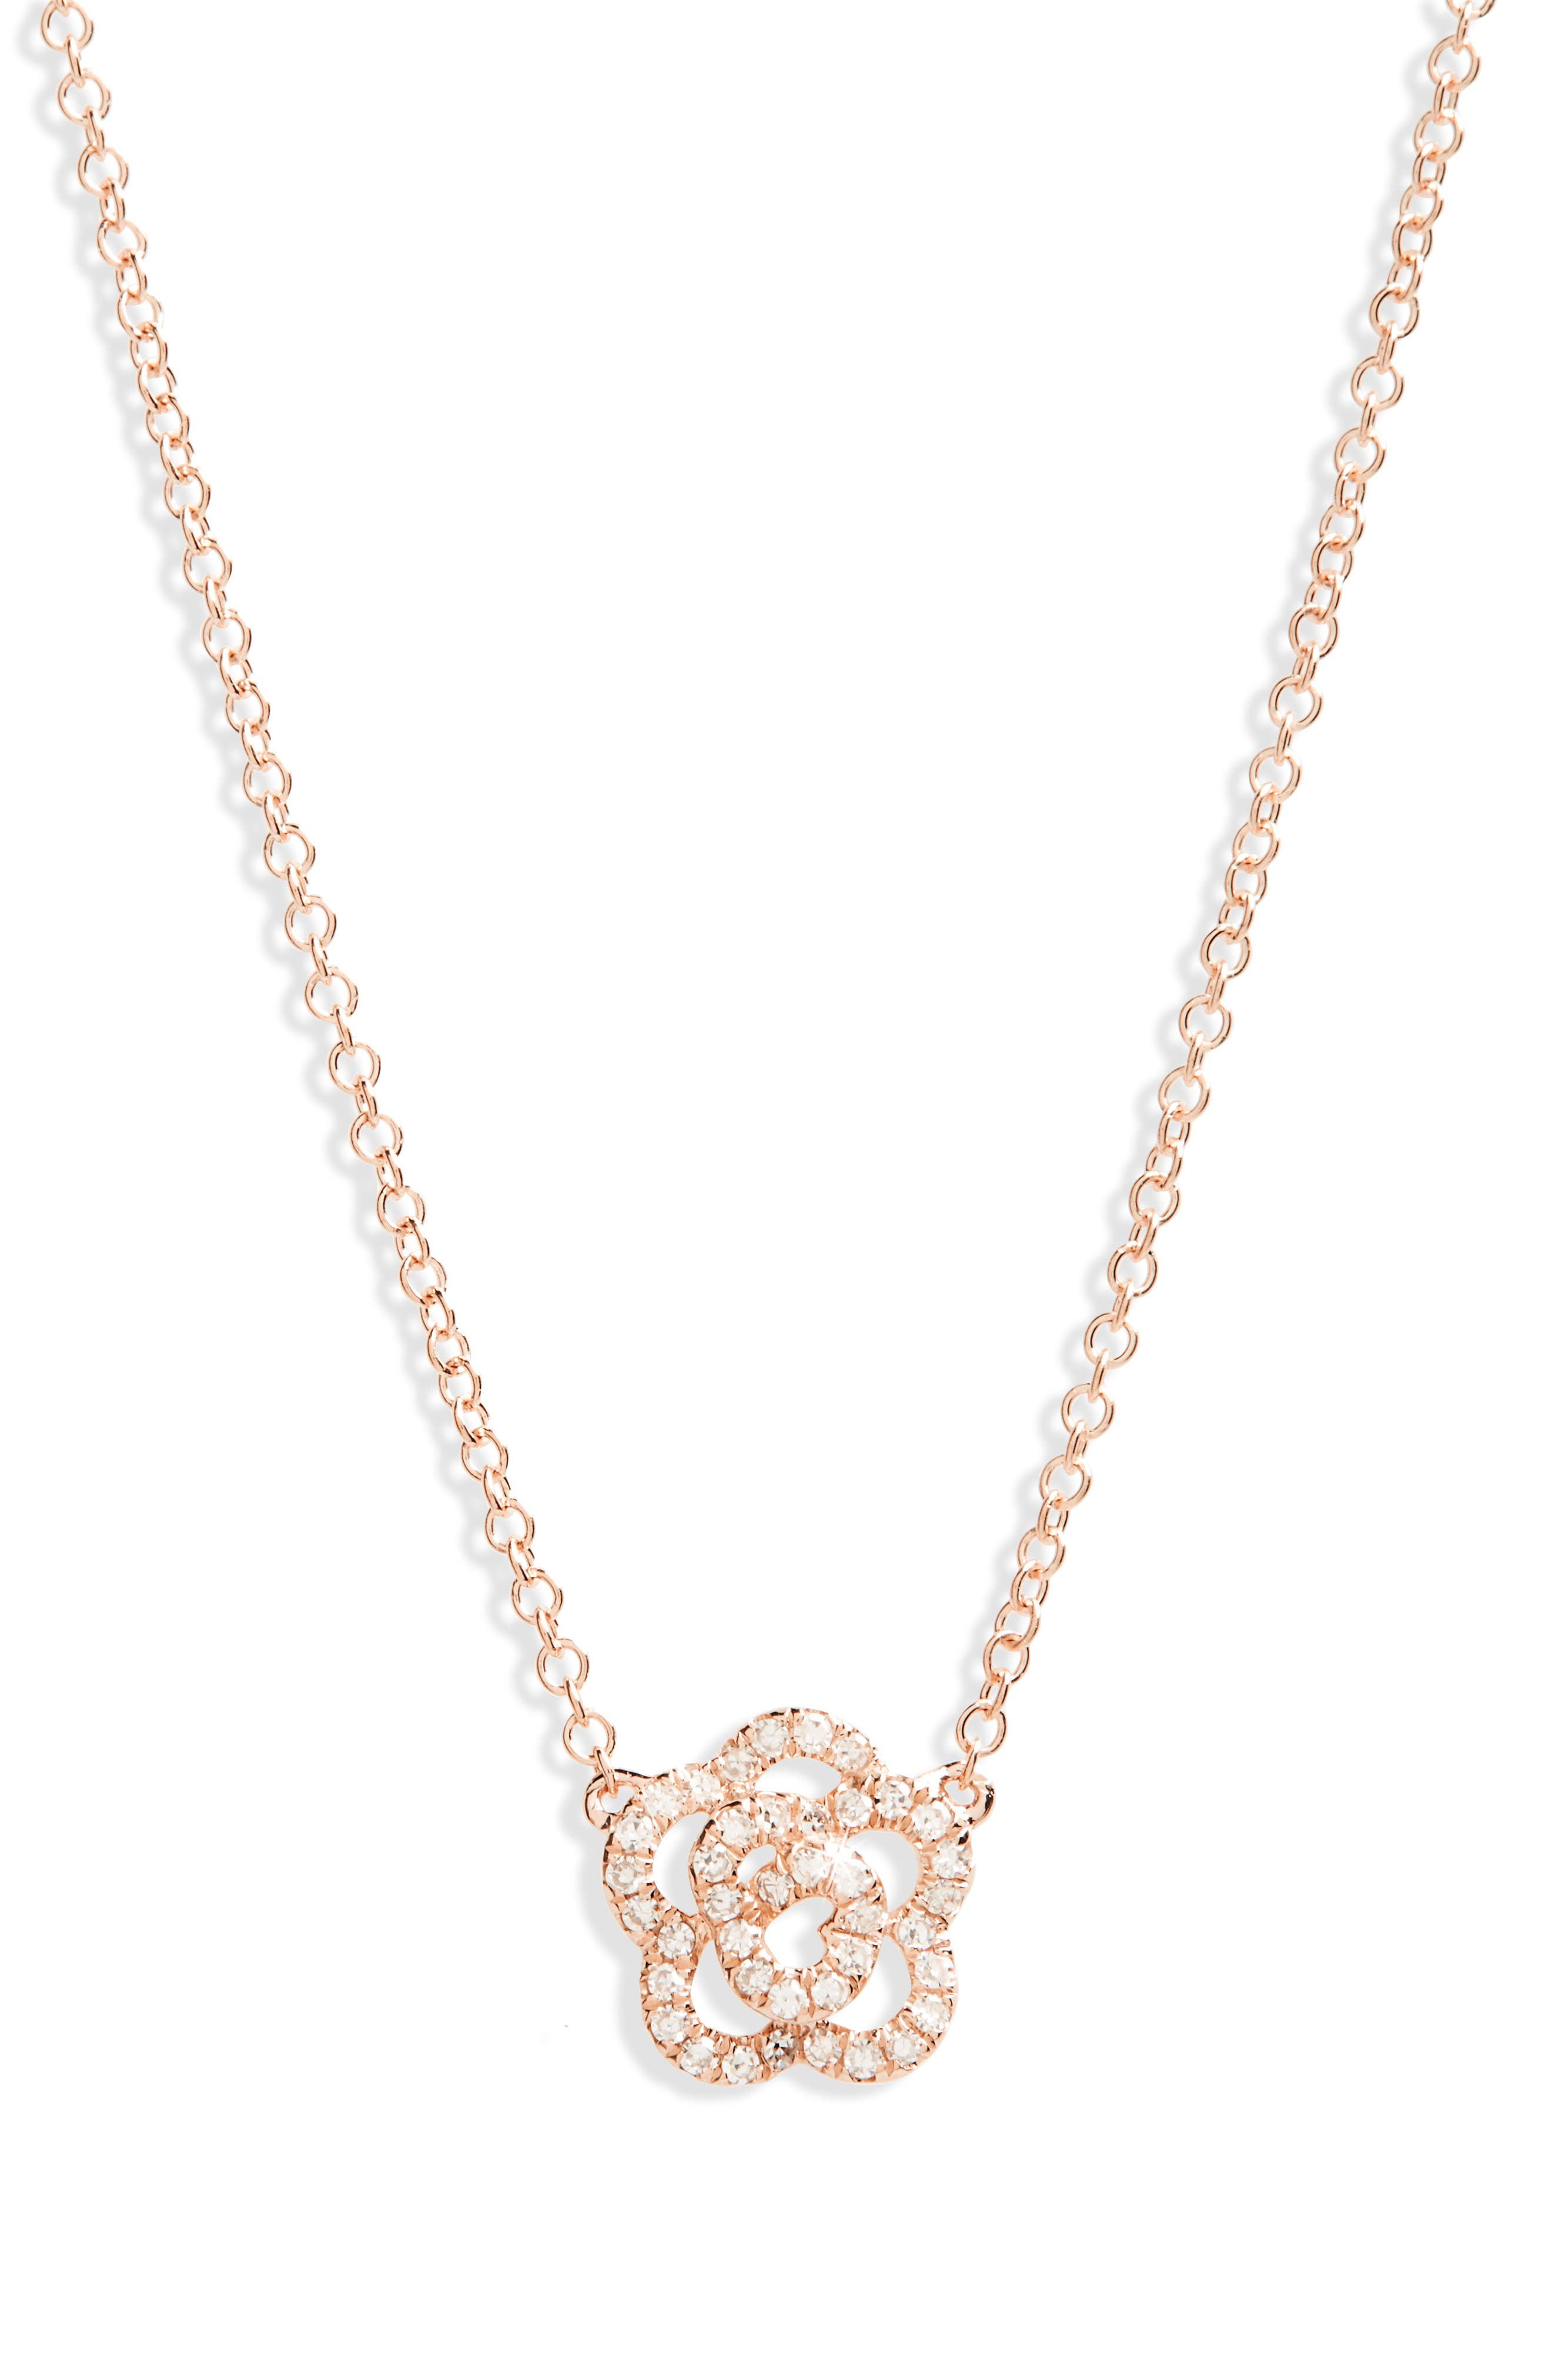 Main Image - EF COLLECTION Diamond Pendant Necklace